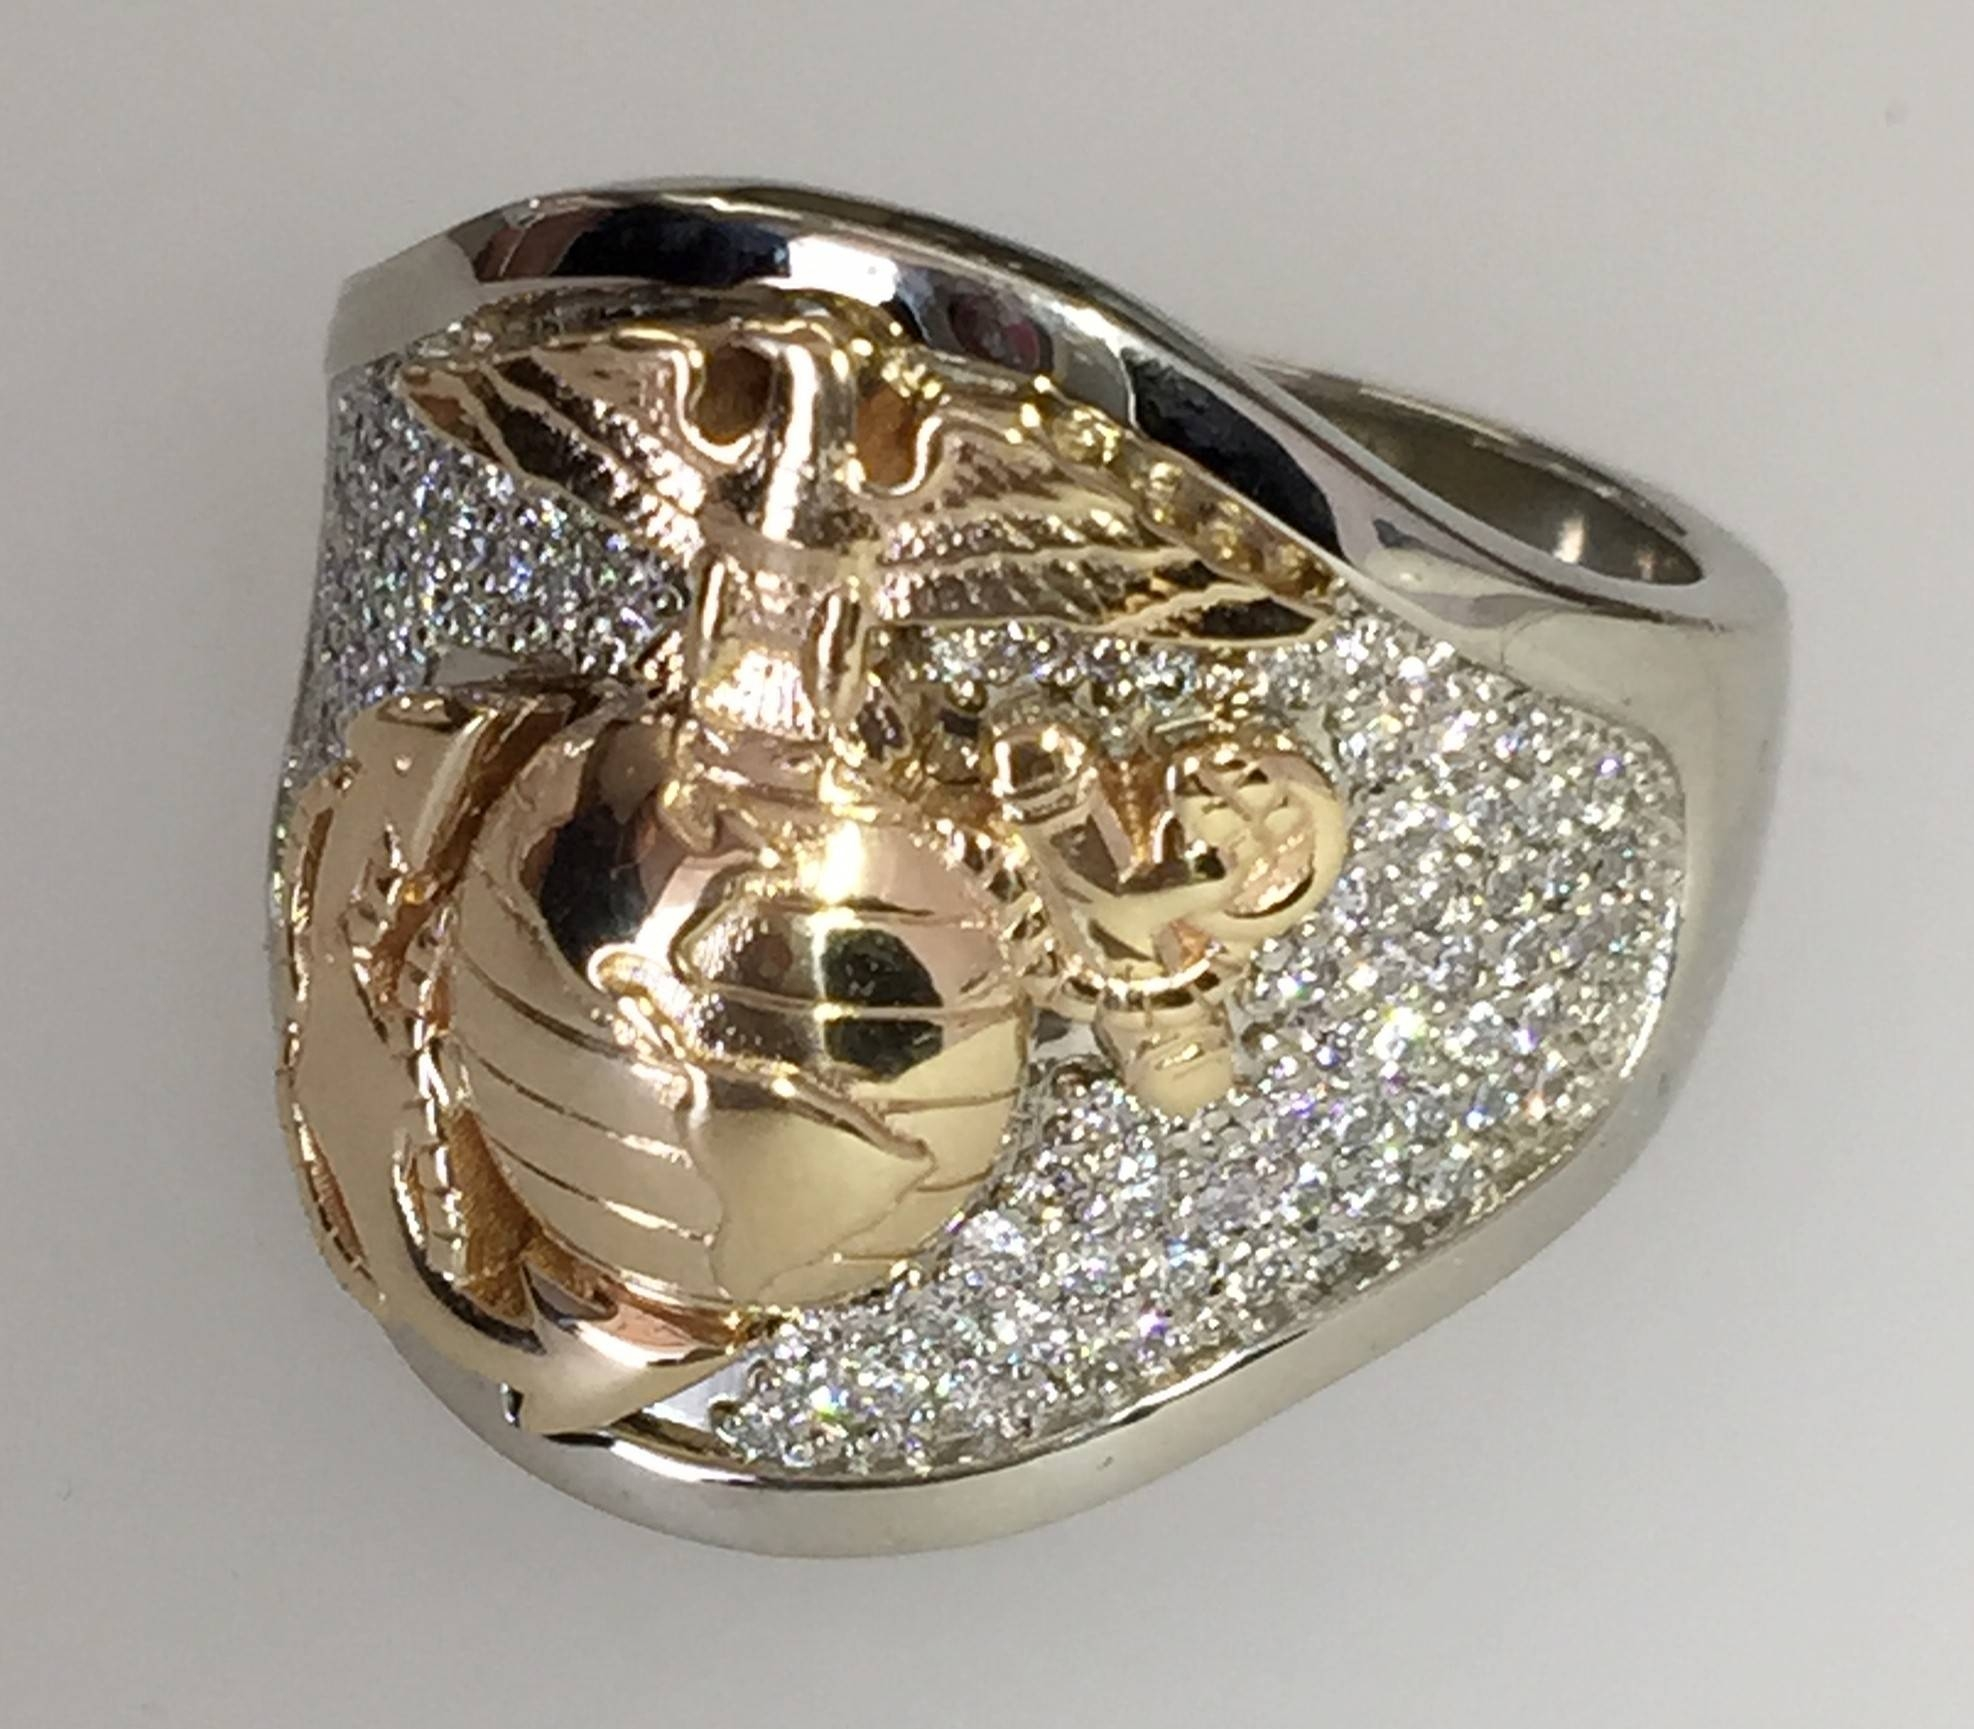 Custom Military Rings Designedusmc Veteran Owned Business And Within Usmc Wedding Bands (Gallery 10 of 15)